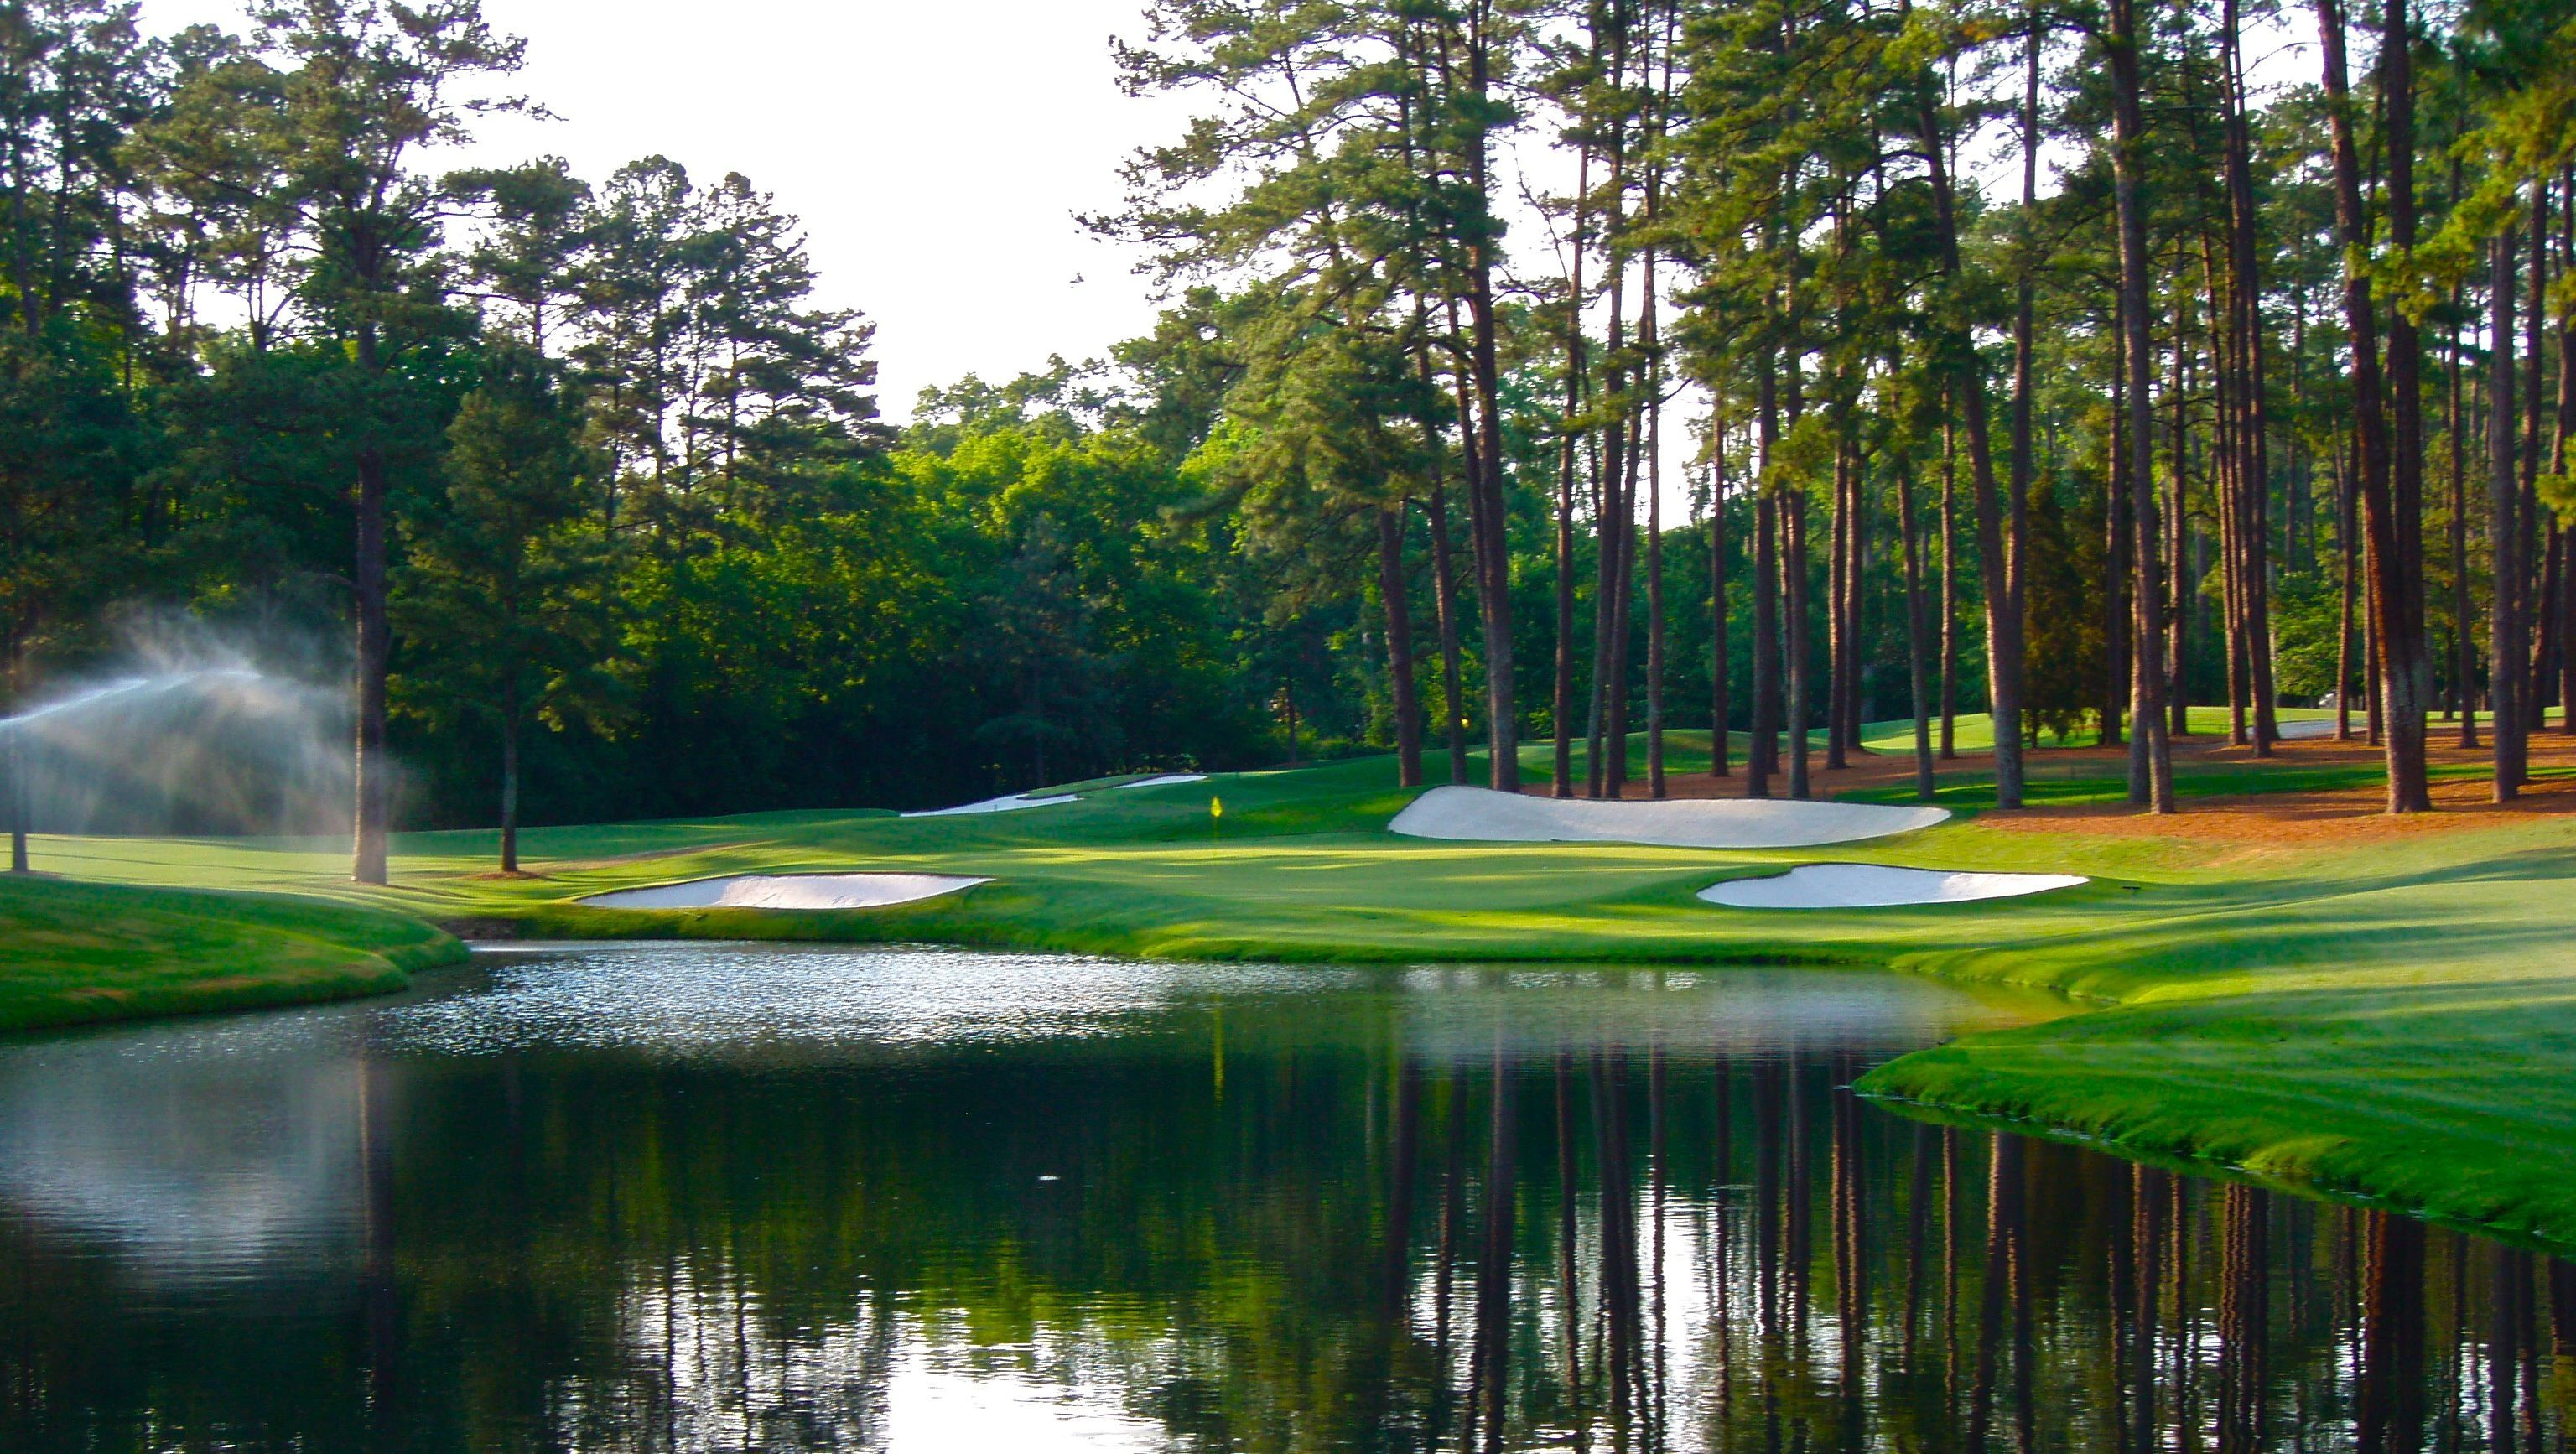 40 Masters Augusta Wallpapers   Download at WallpaperBro 3072x1734